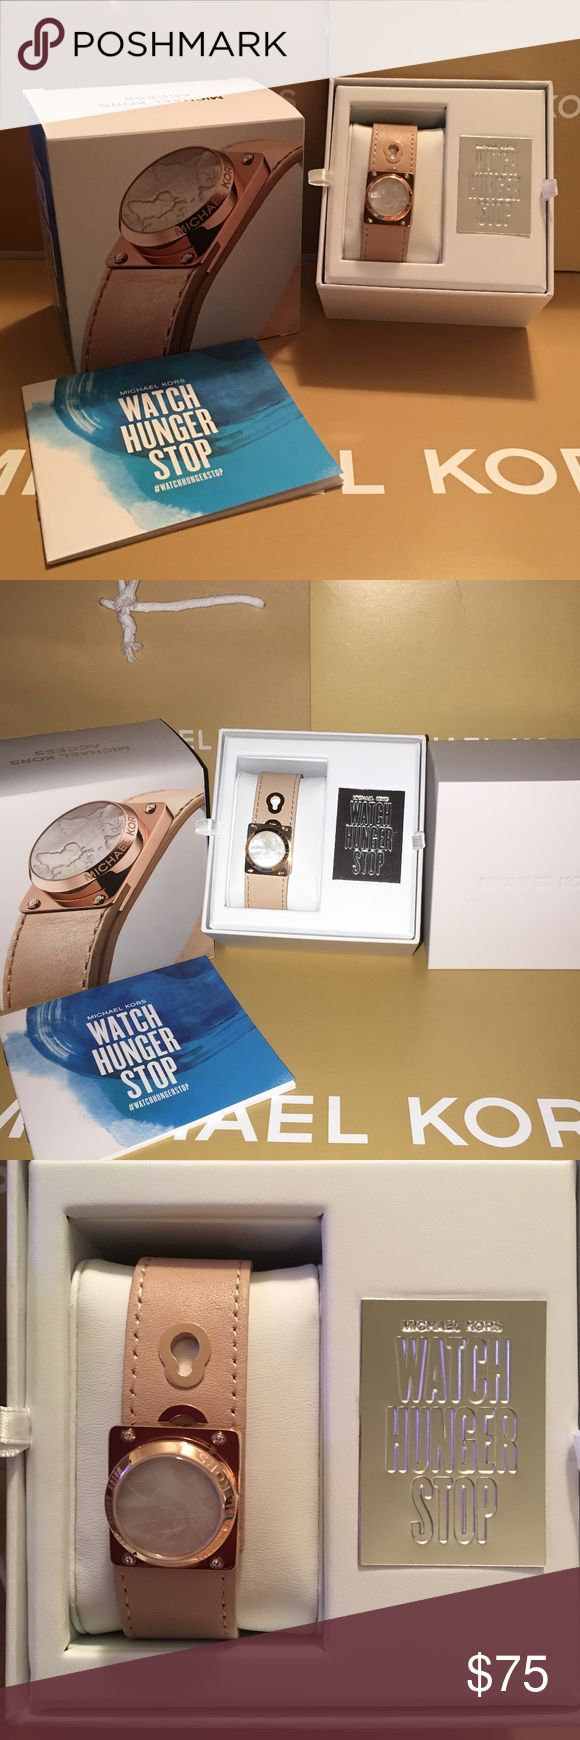 NEW MICHAEL KORS ACCESS ACTIVITY TRACKER WATCH YOUR ACTIVITY IN STYLE WITH MICHAEL KORS WATCH HUNGER STOP TRACKER.  THIS IS ROSE GOLD WITH LEATHER STRAP AND HAS AN ADJUSTABLE BAND.  THIS A BEAUTIFUL NICE SLEEK LOOK ON THE WRIST AND CLASSY....YES CLASSY:-)  COMES NEW IN BOX WITH BOOKLET AND I AM GIVING YOU THE MK BOX AND BAG WITH IT.....GREAT GIFT IDEA:-)  THANKS FOR VIEWING AND SHARING MY CLOSET:-) MICHAEL KORS Accessories Watches